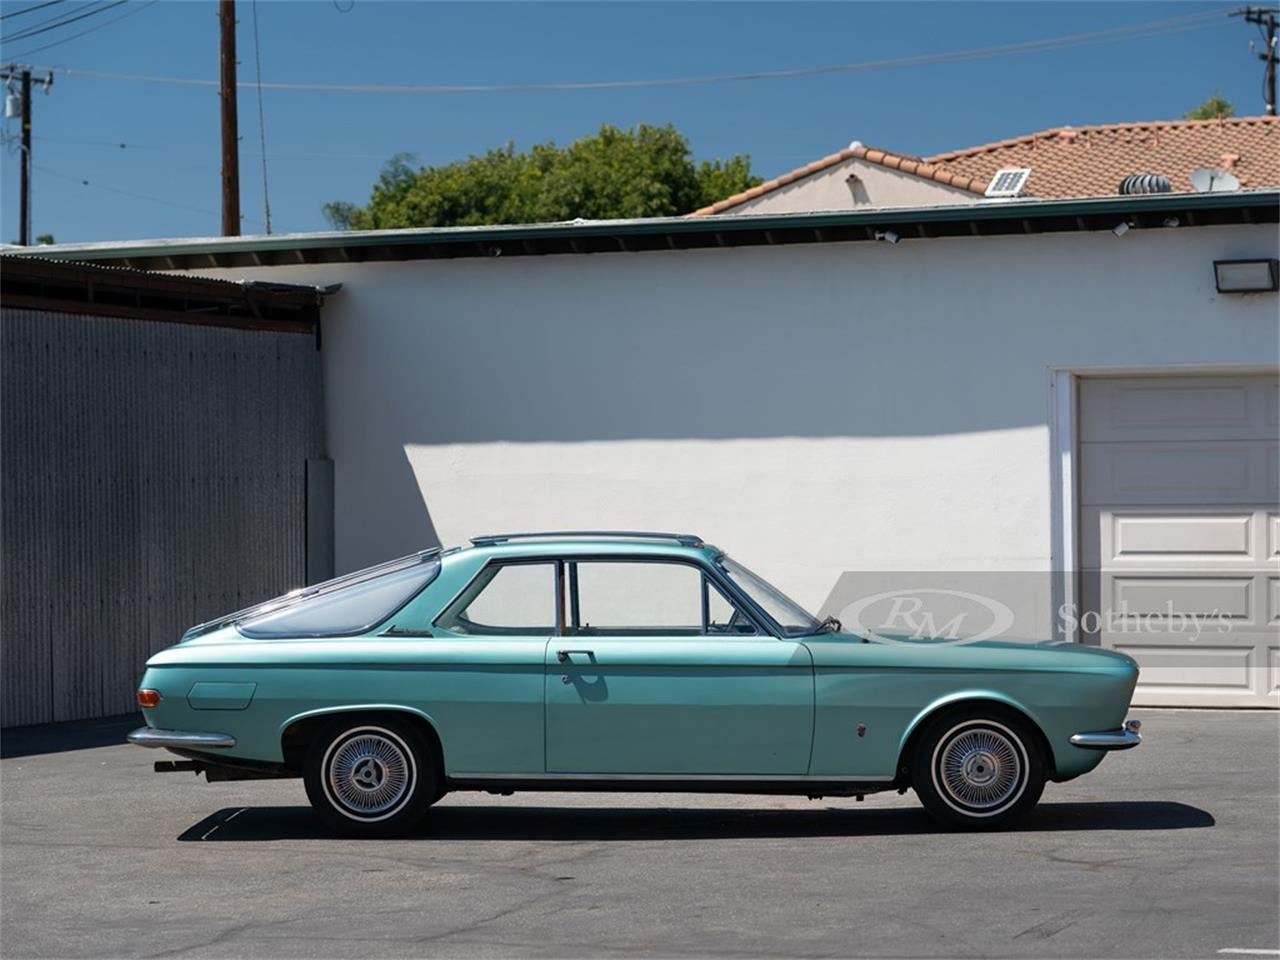 1963 Ford Falcon (CC-1382531) for sale in Online, California